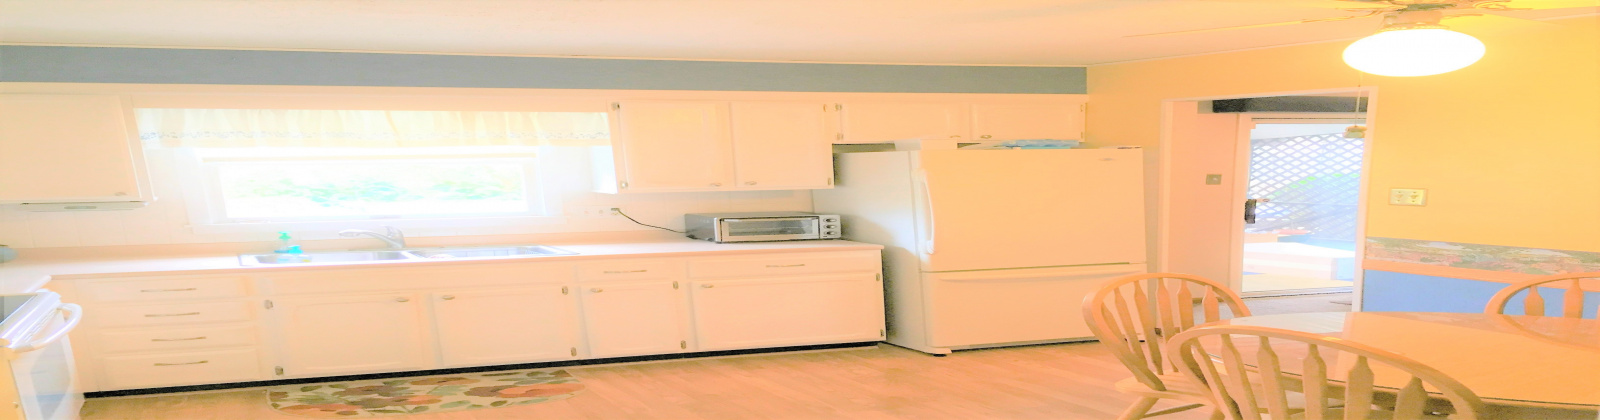 14 Clinton Street The Plains, Ohio, 3 Bedrooms Bedrooms, ,2 BathroomsBathrooms,Apartment,For Rent,Clinton,1034